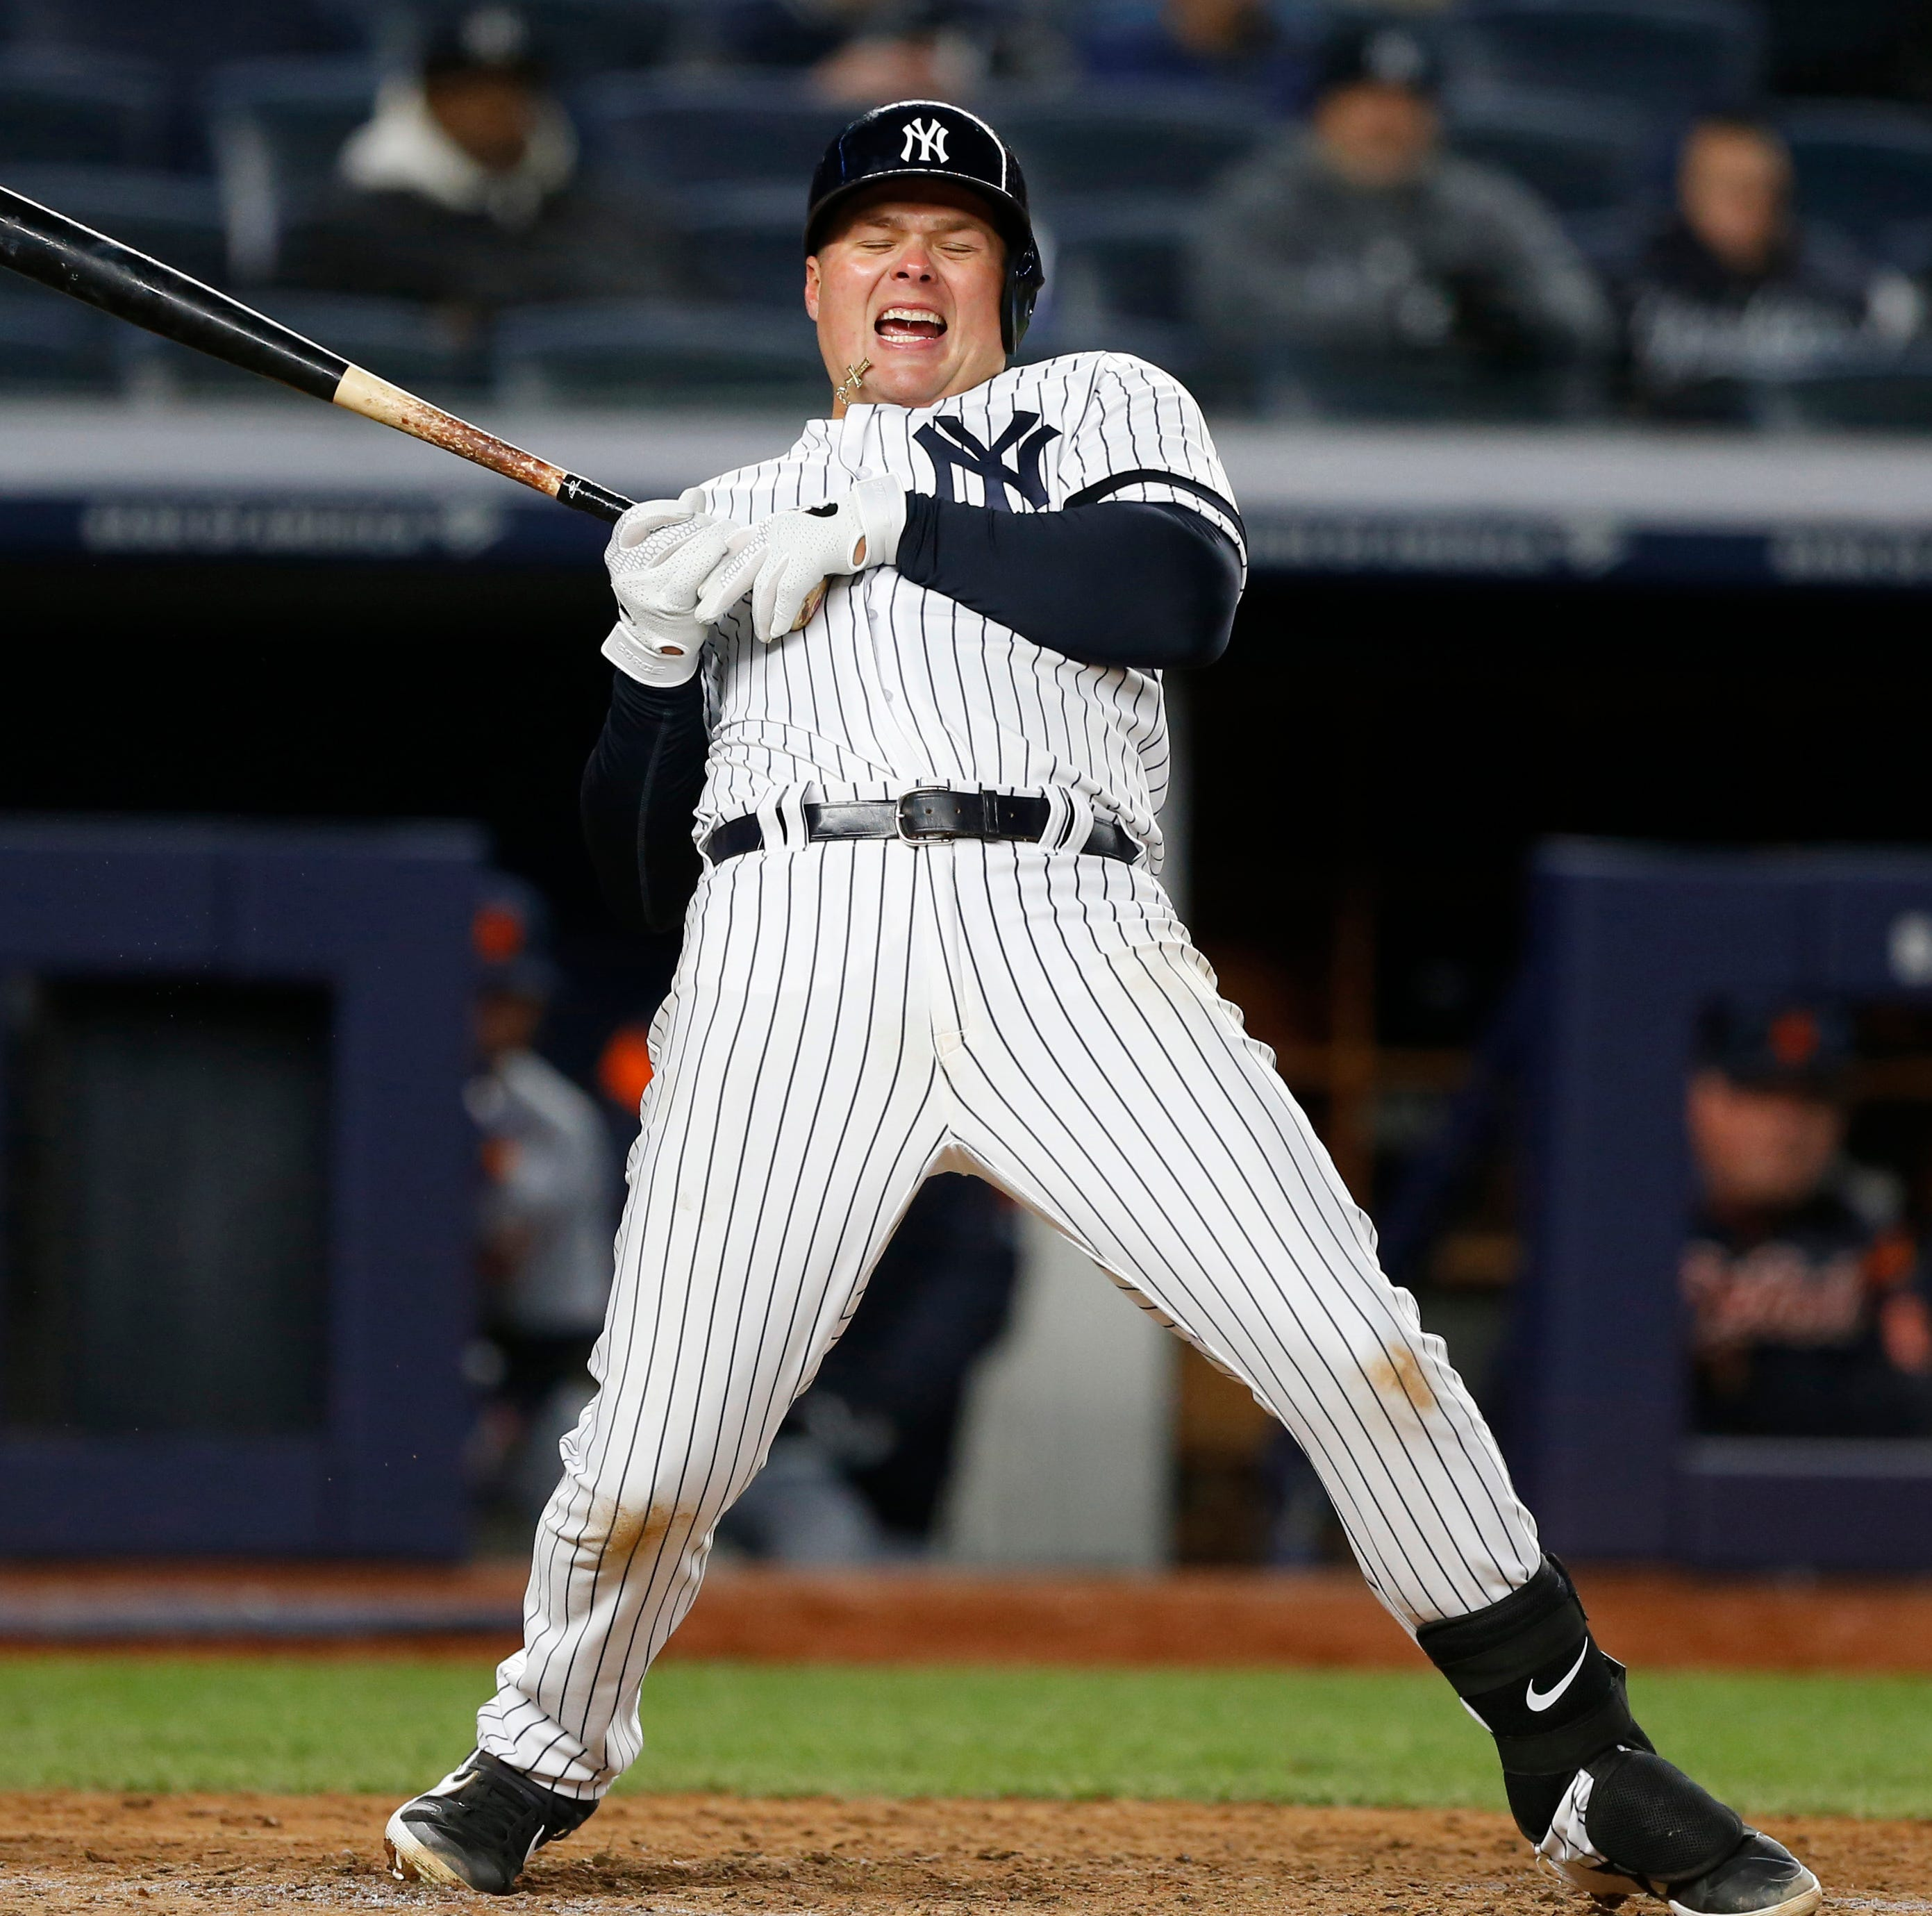 Luke Voit survives injury scare, but Yankees lose as Aroldis Chapman gives up go-ahead runs